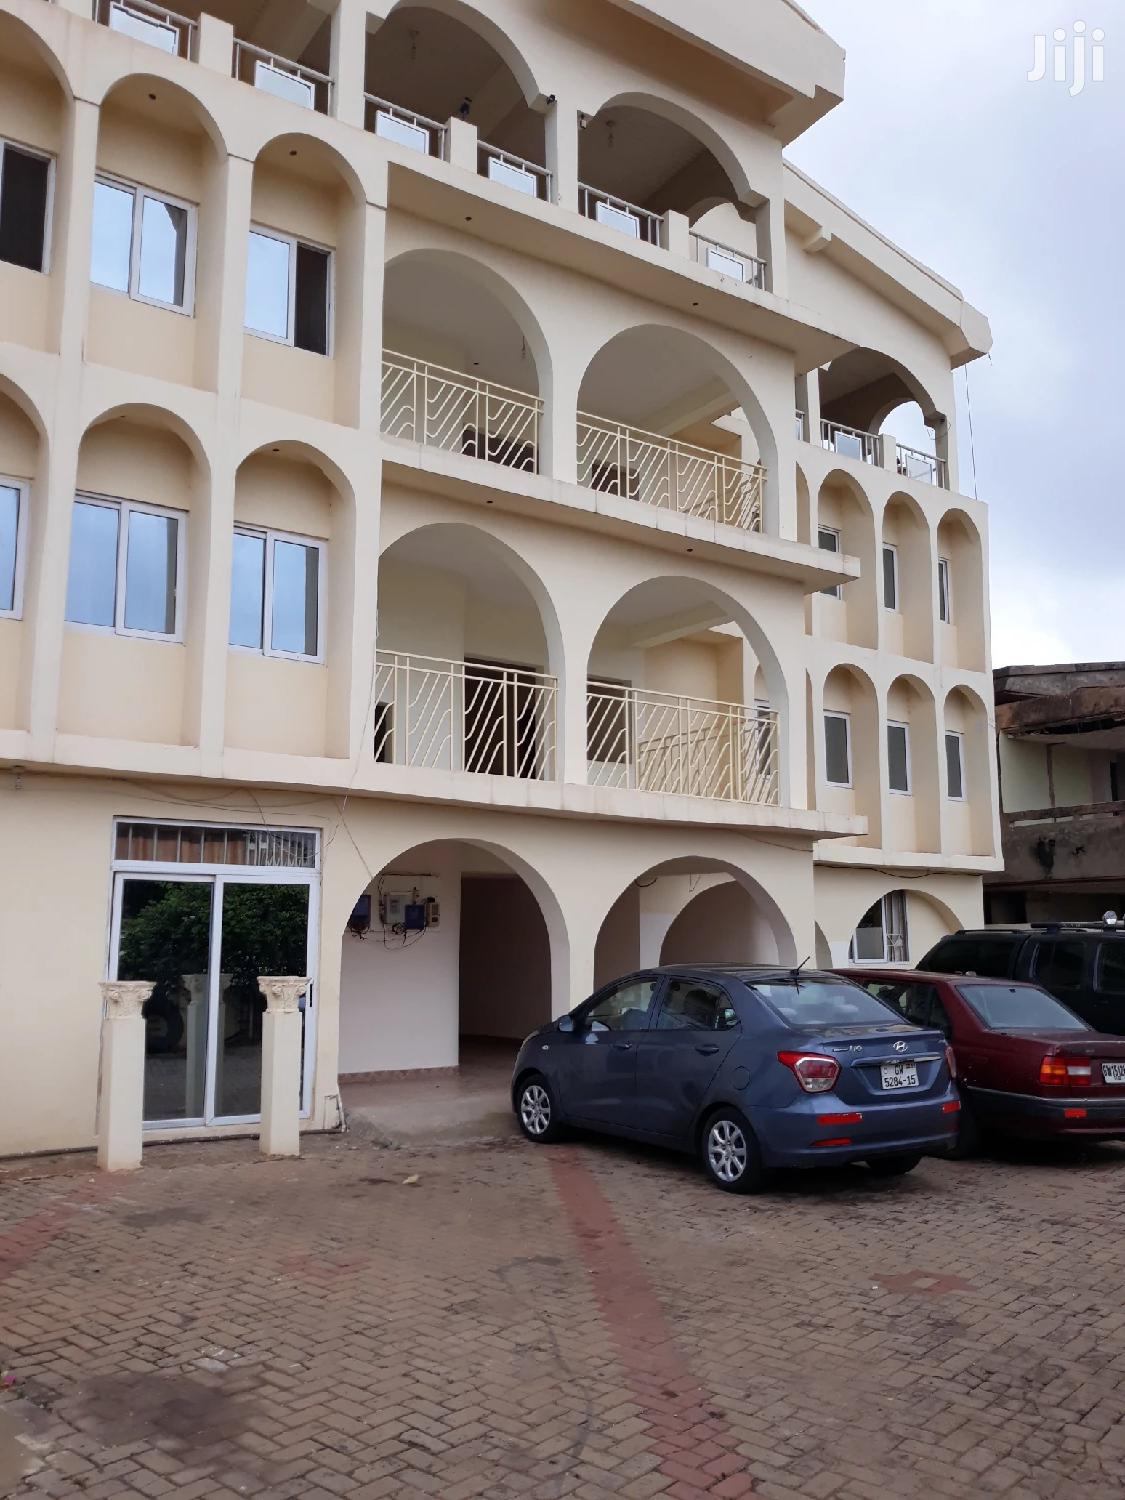 Single Room S/C Apartment For Rent At Achimota. | Houses & Apartments For Rent for sale in Achimota, Greater Accra, Ghana